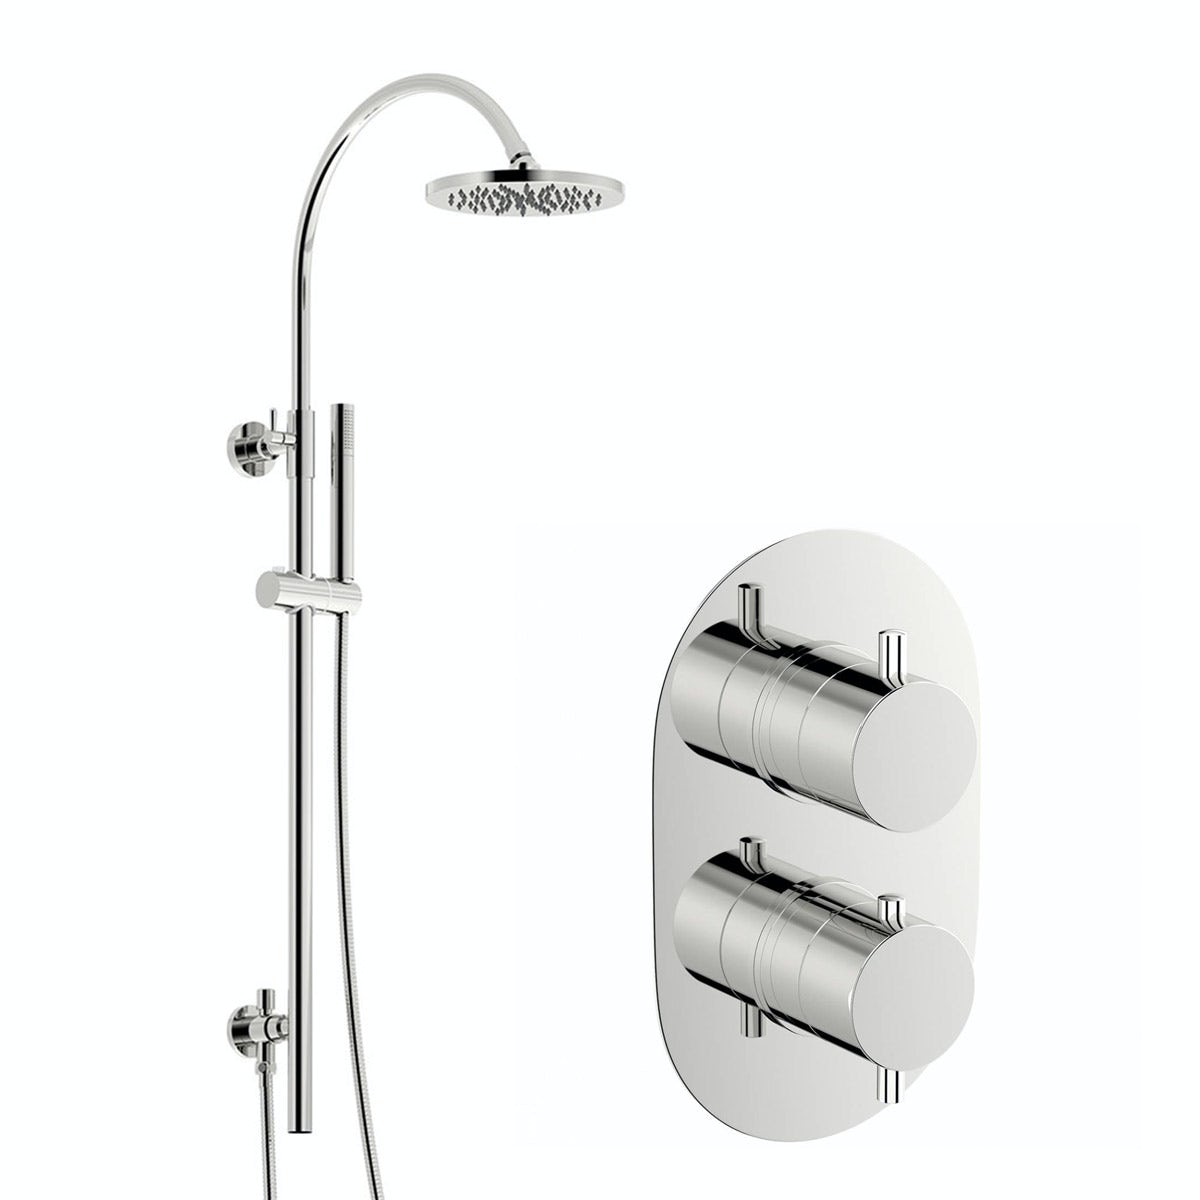 Mode Harrison thermostatic shower valve with wall riser rail set